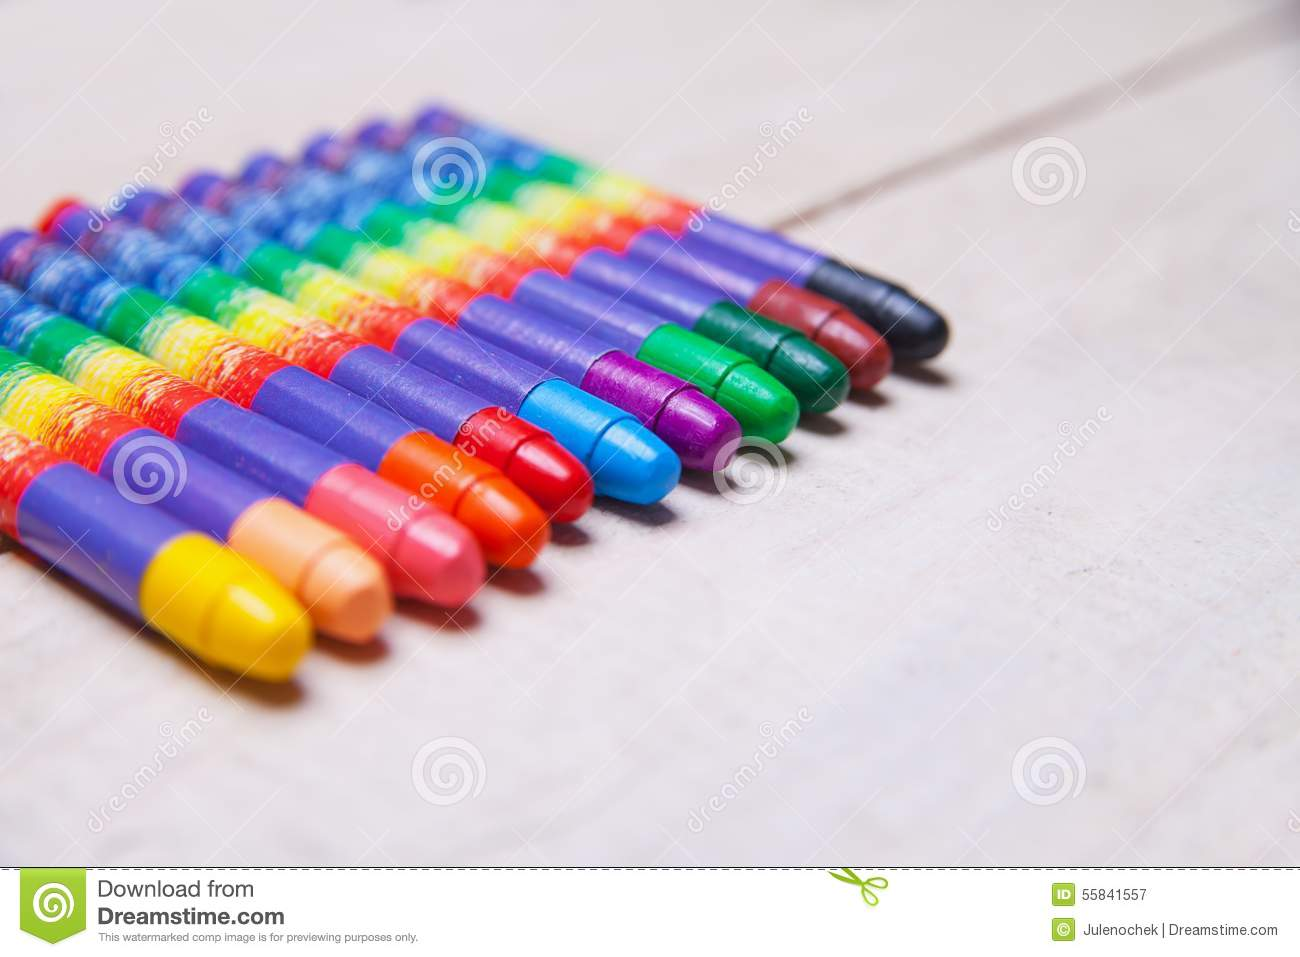 Download Wax Crayons On Wood Table Stock Image. Image Of Object   55841557